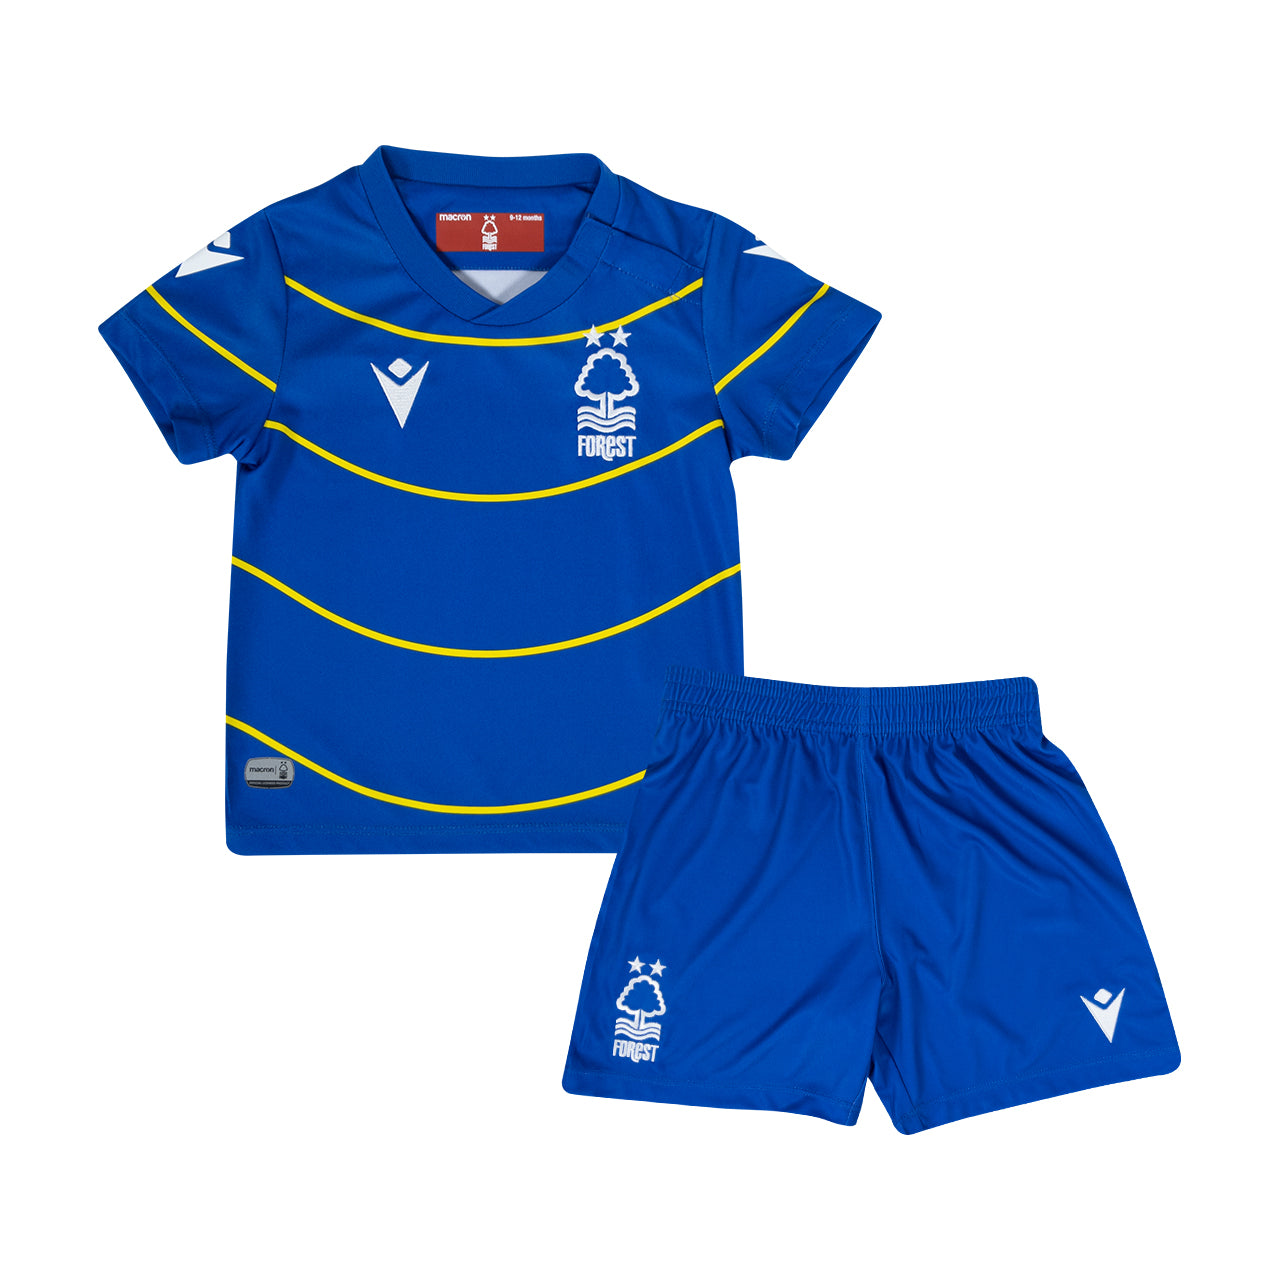 NFFC Baby Away Kit 2020/21